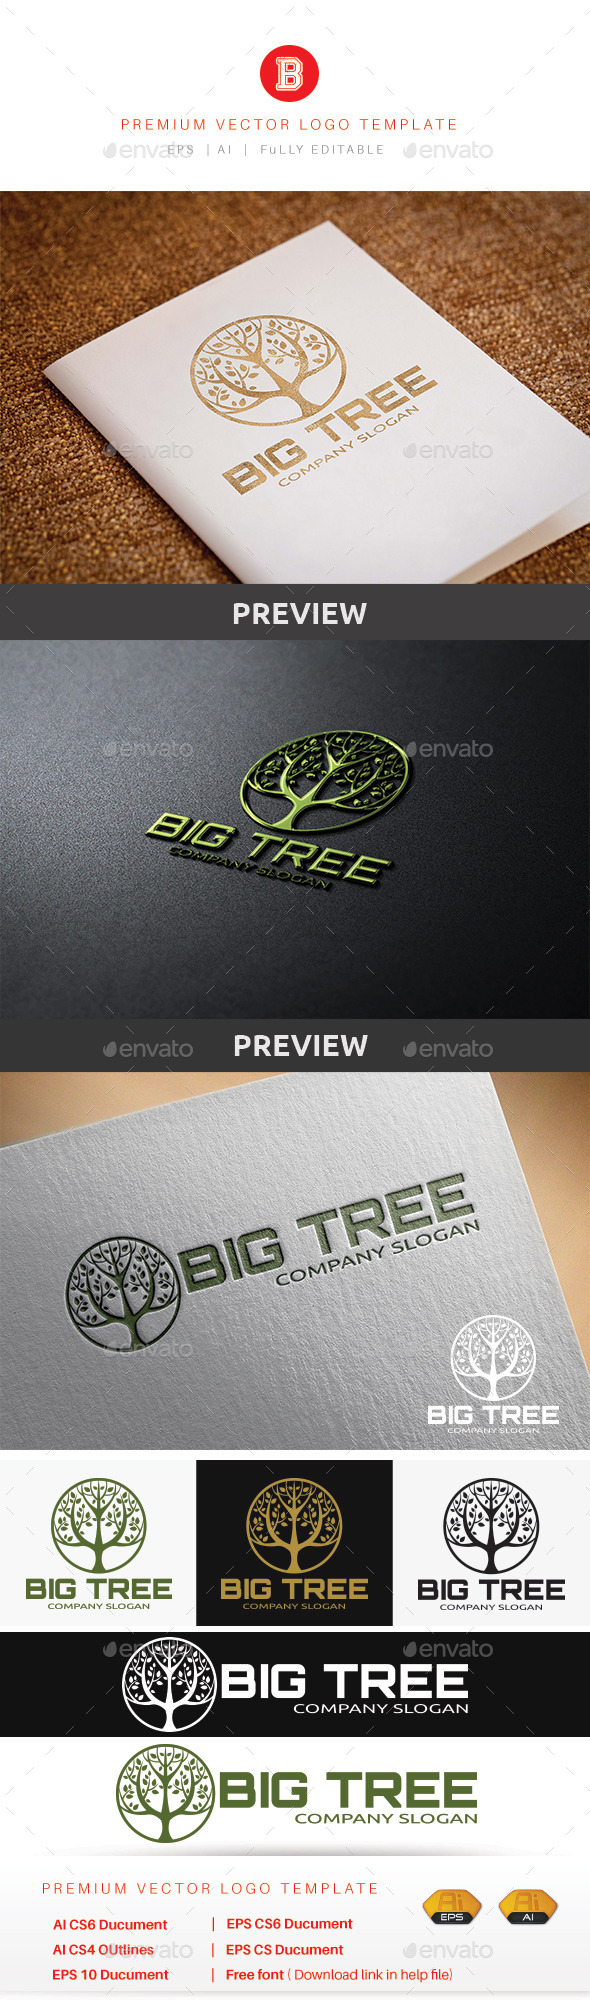 GraphicRiver Big Tree V.2 9203822